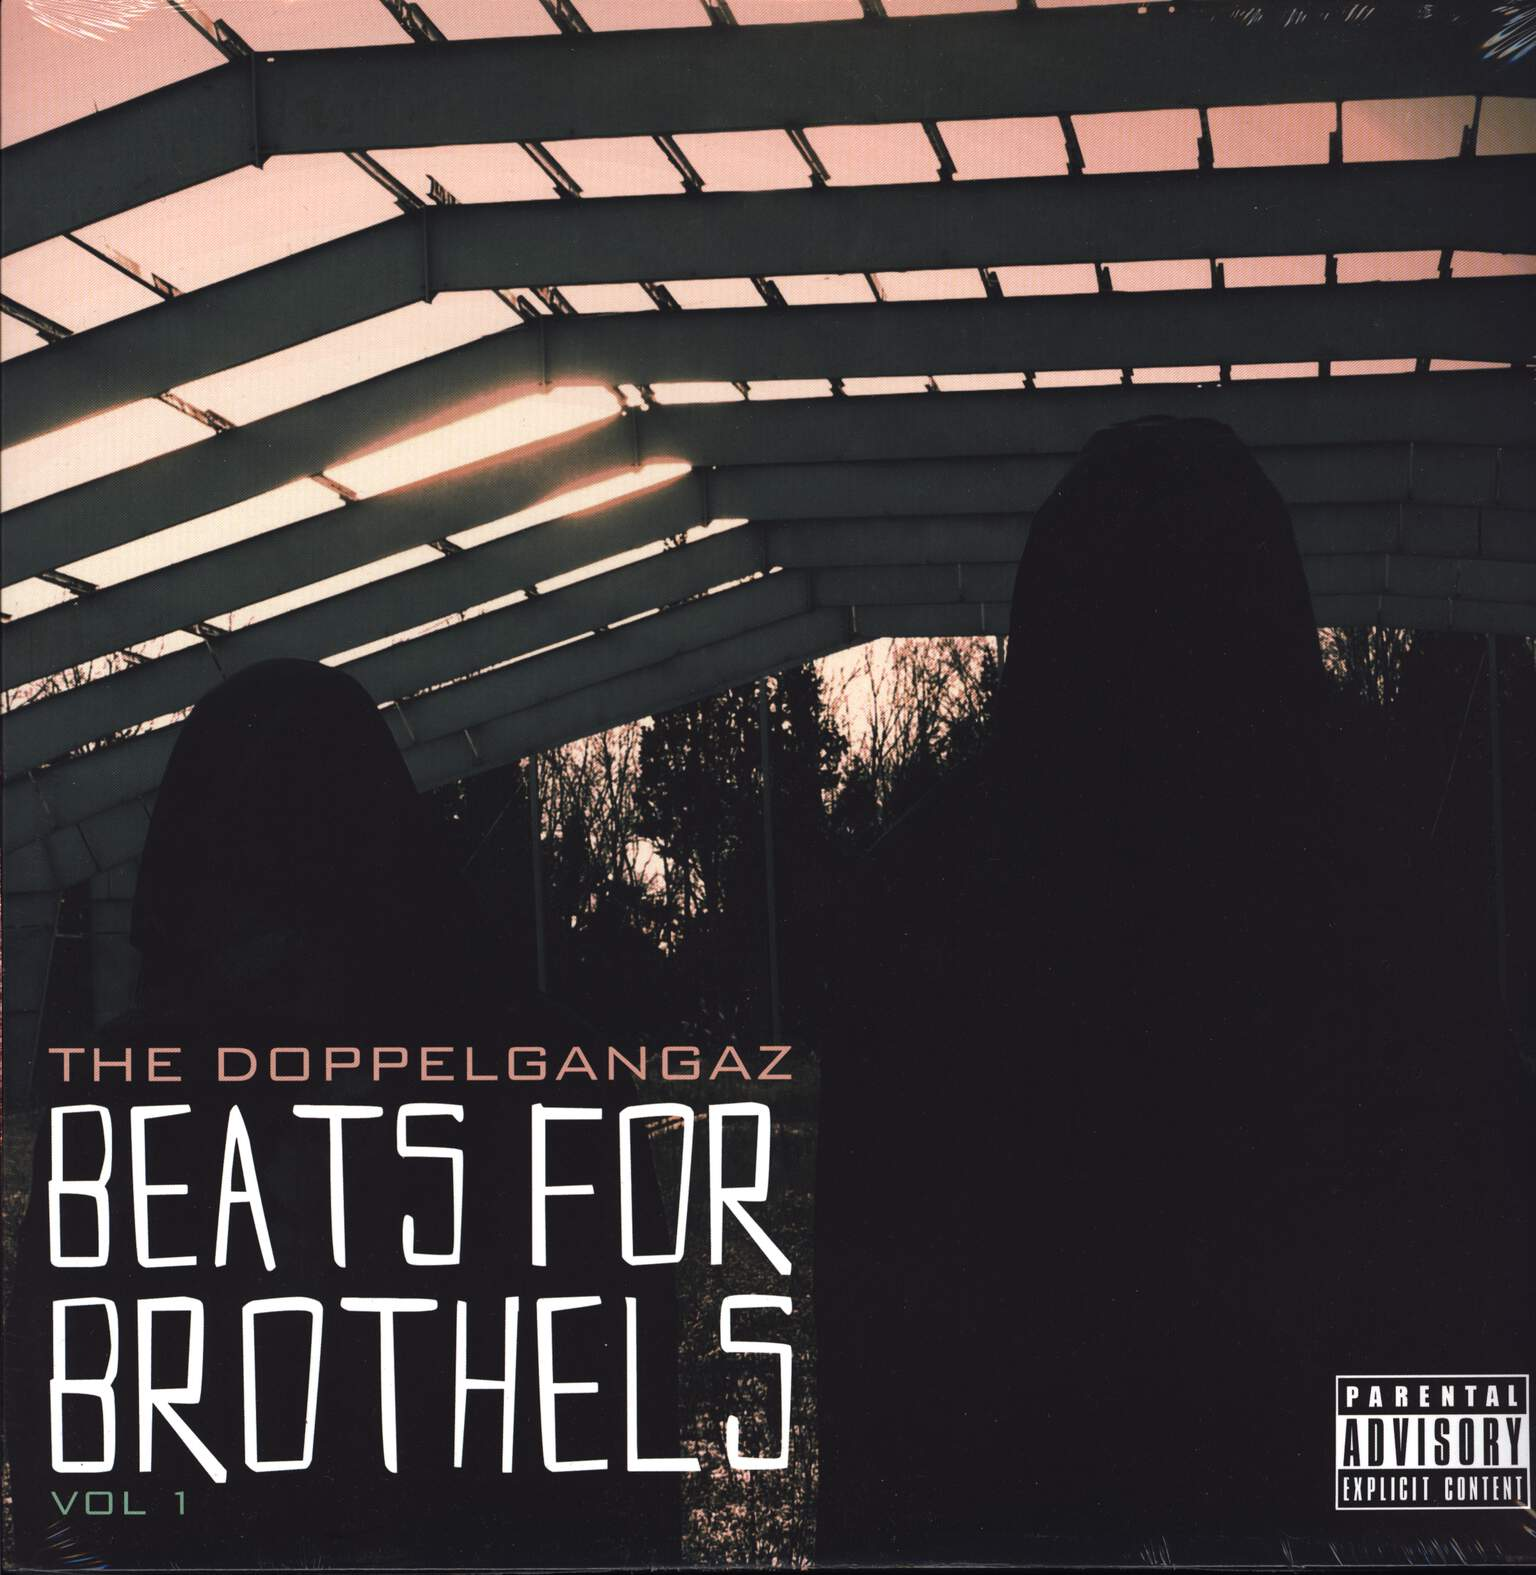 The Doppelgangaz: Beats For Brothels Vol 1, LP (Vinyl)